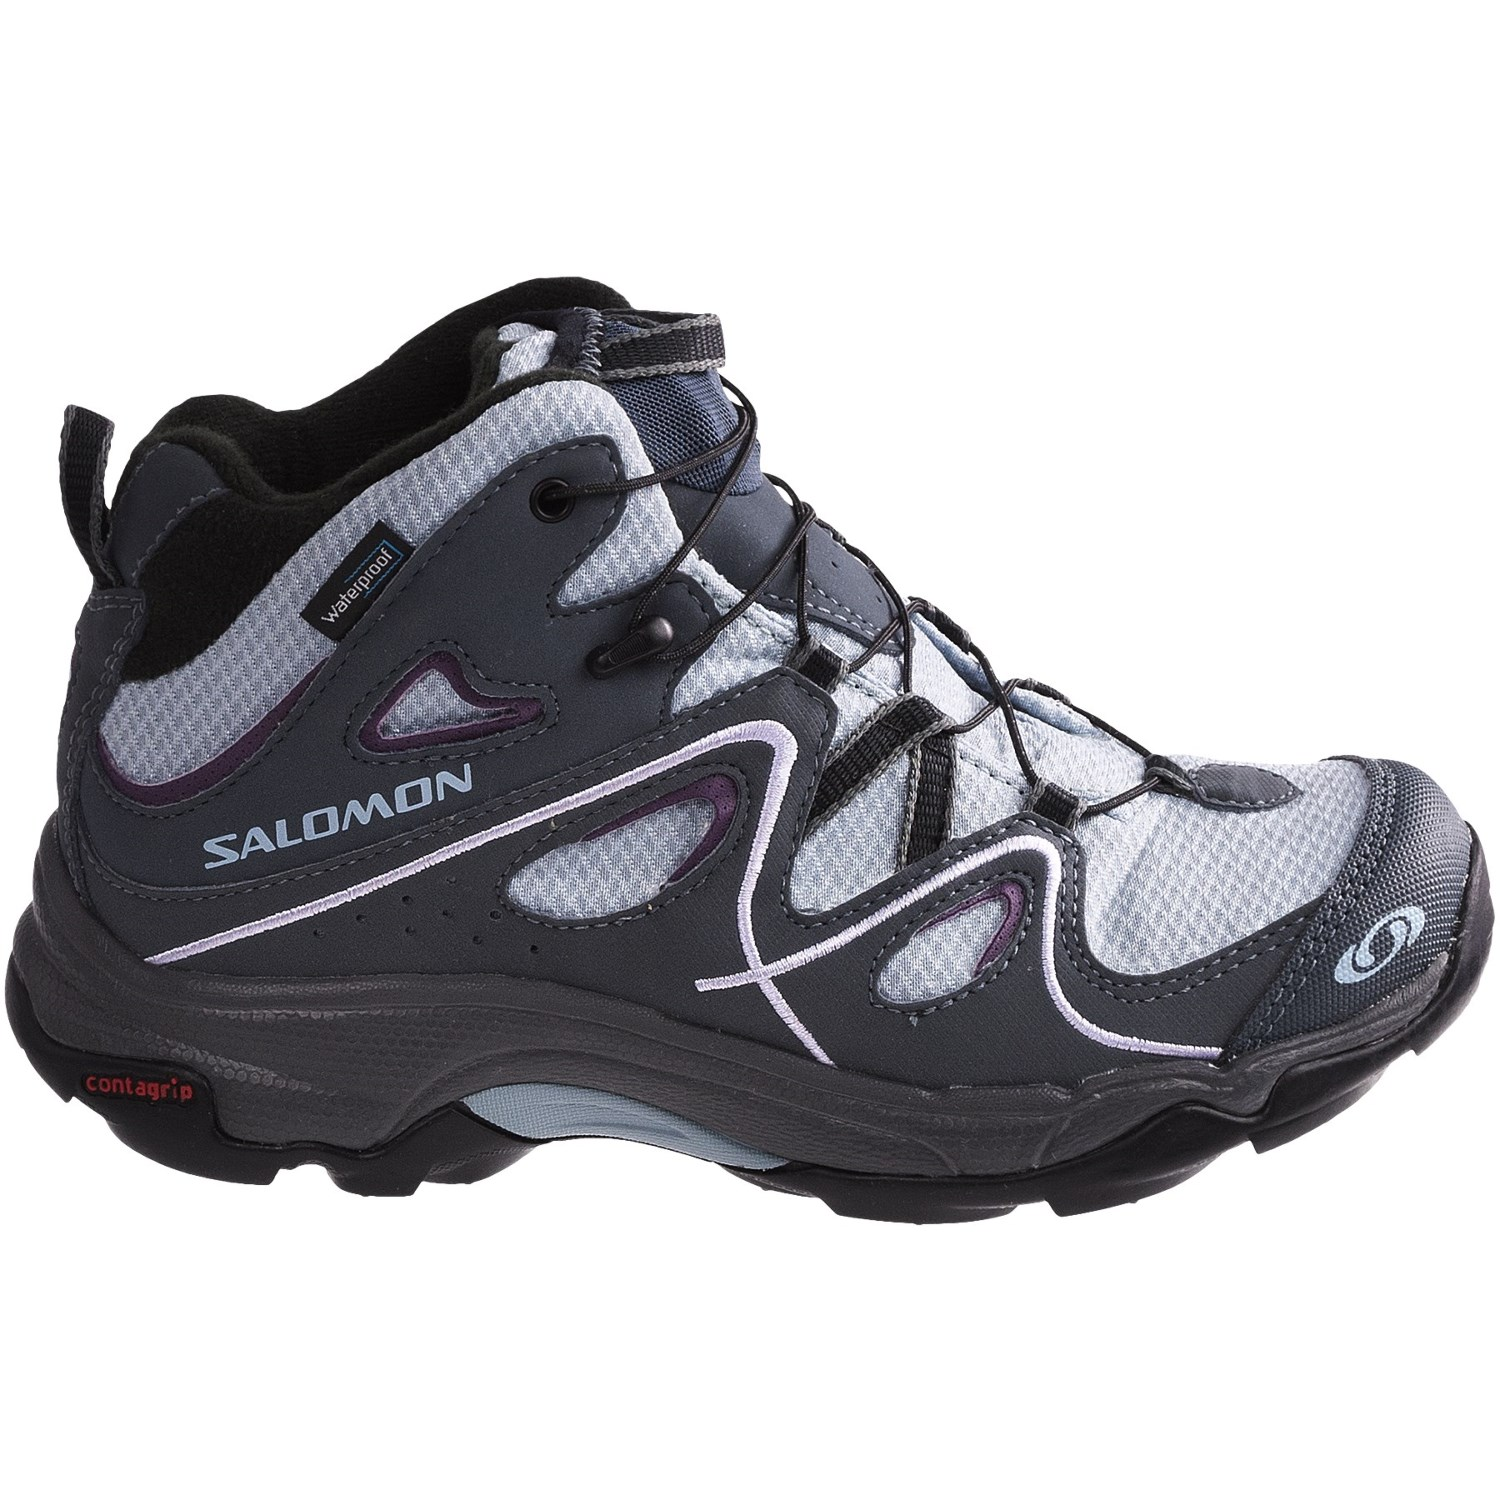 Youth Hiking Shoes Size